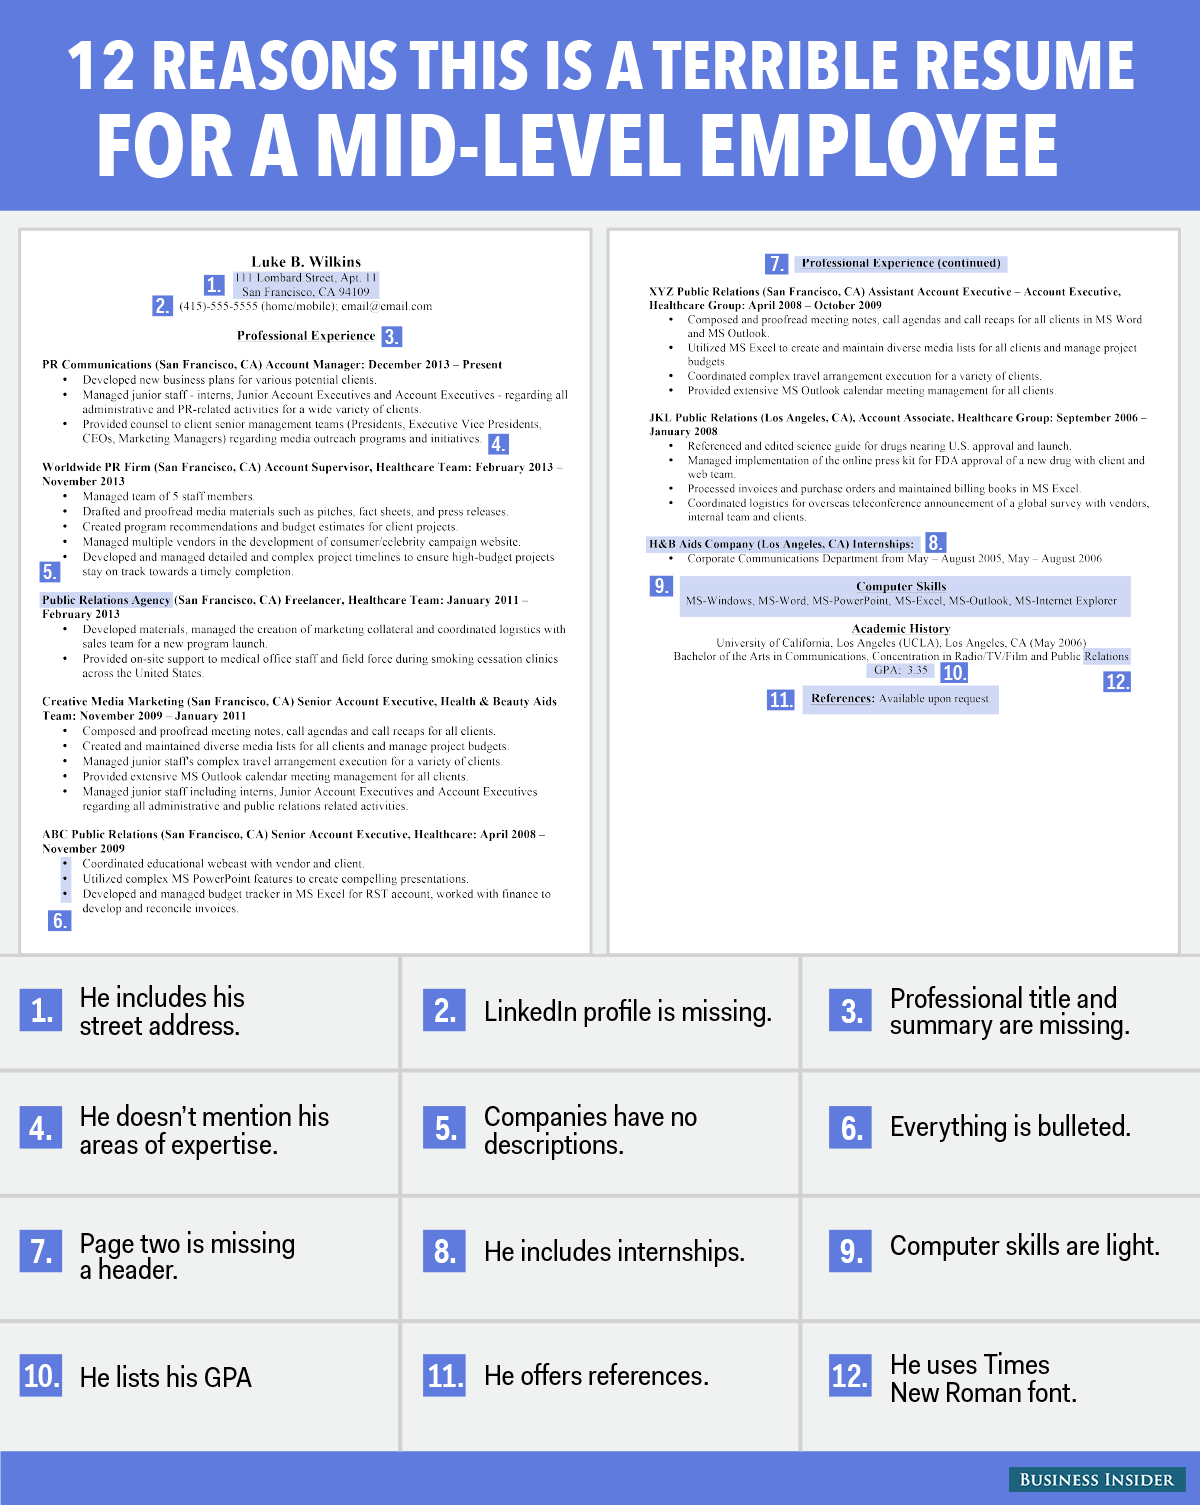 Free Job Boards To Search Resumes 12 Reasons This Is Terrible Résumé For A Mid Level